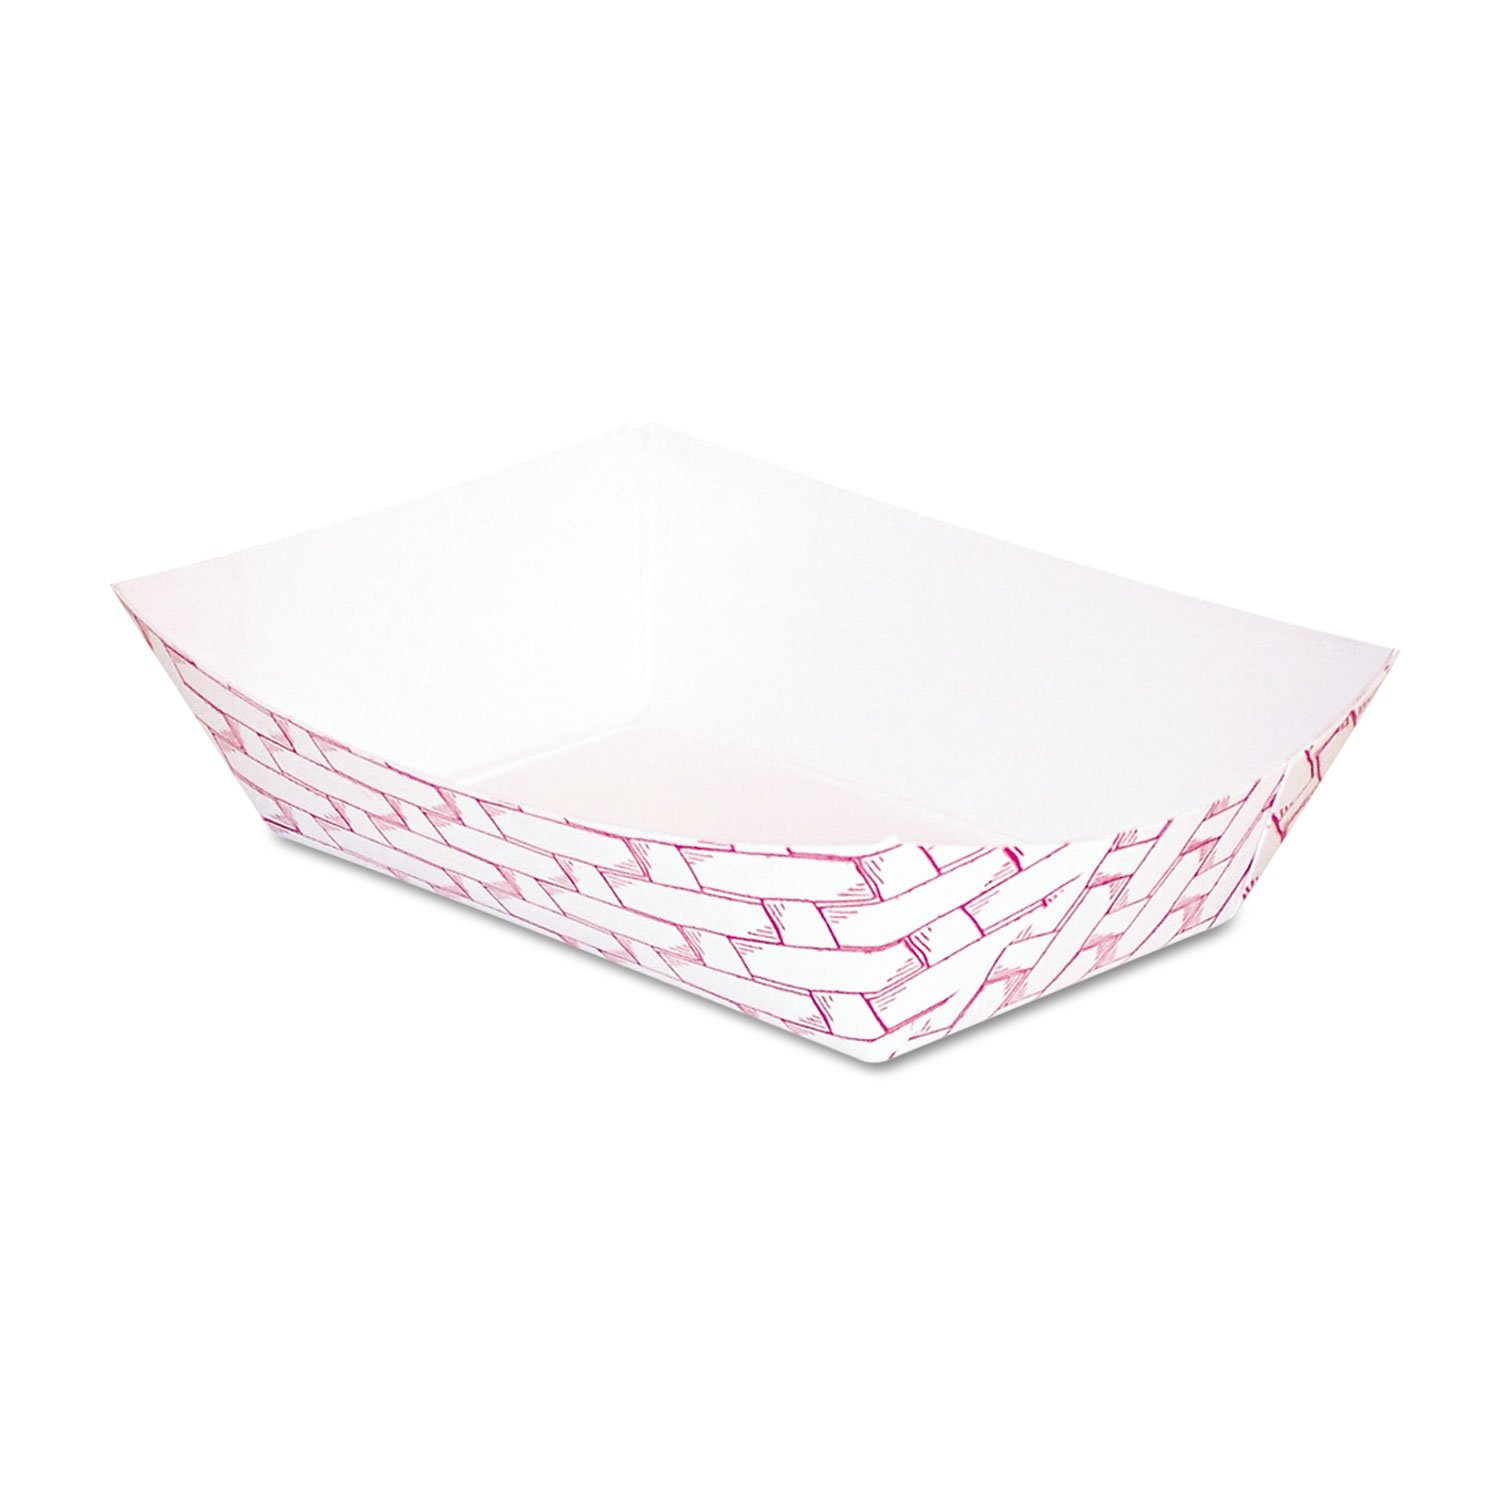 Boardwalk 30LAG025 Paper Food Baskets, 1/4 Lb Capacity, Red/white, 1000/carton